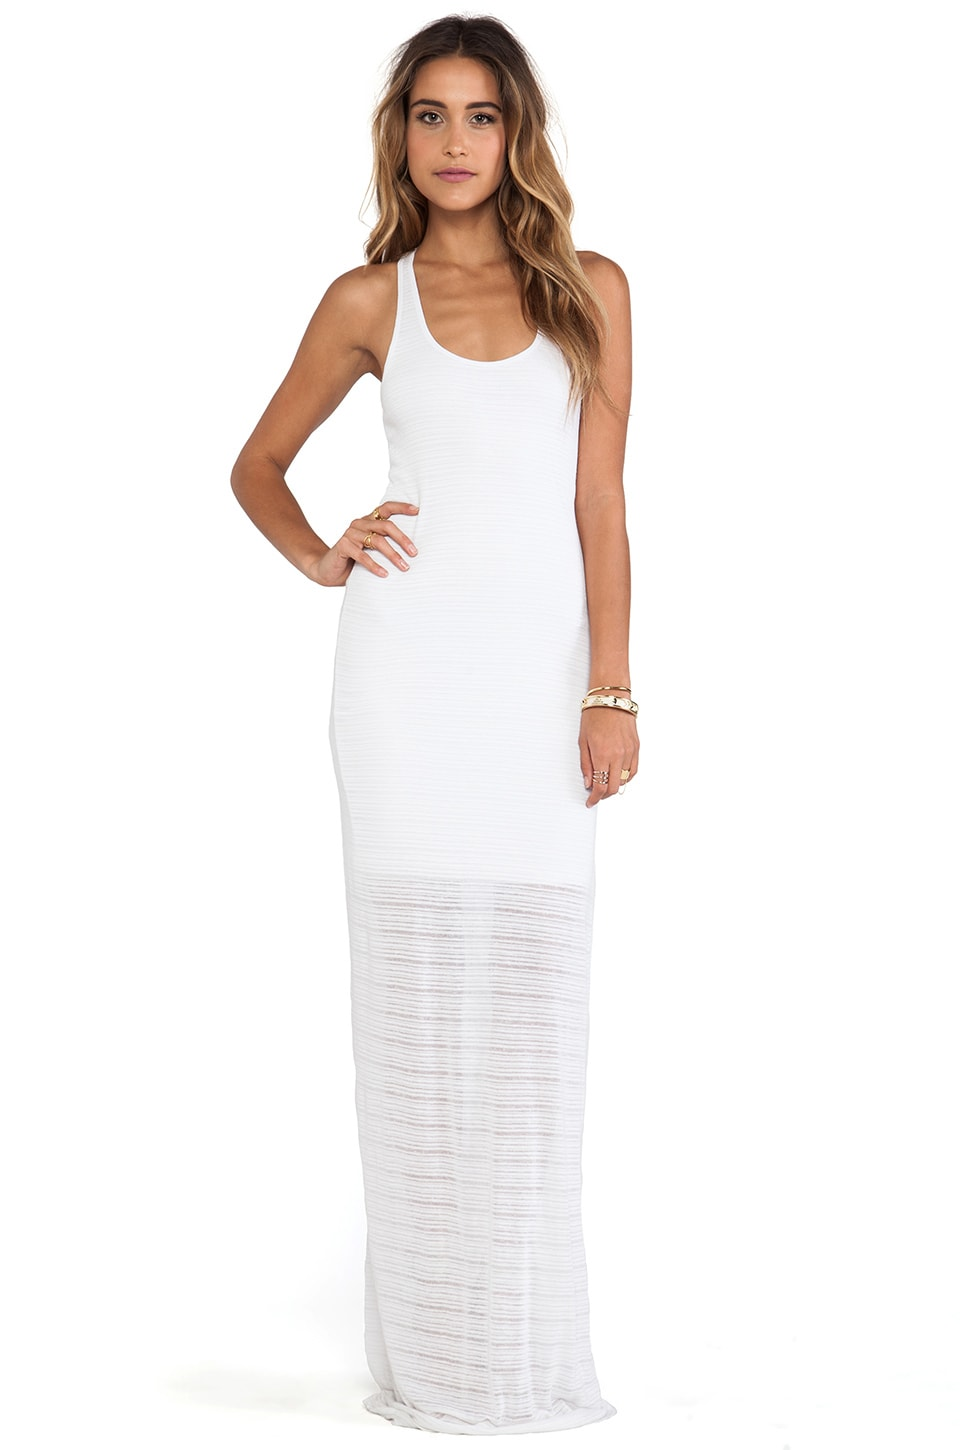 Bella Luxx Slub Stripe Maxi Dress in White